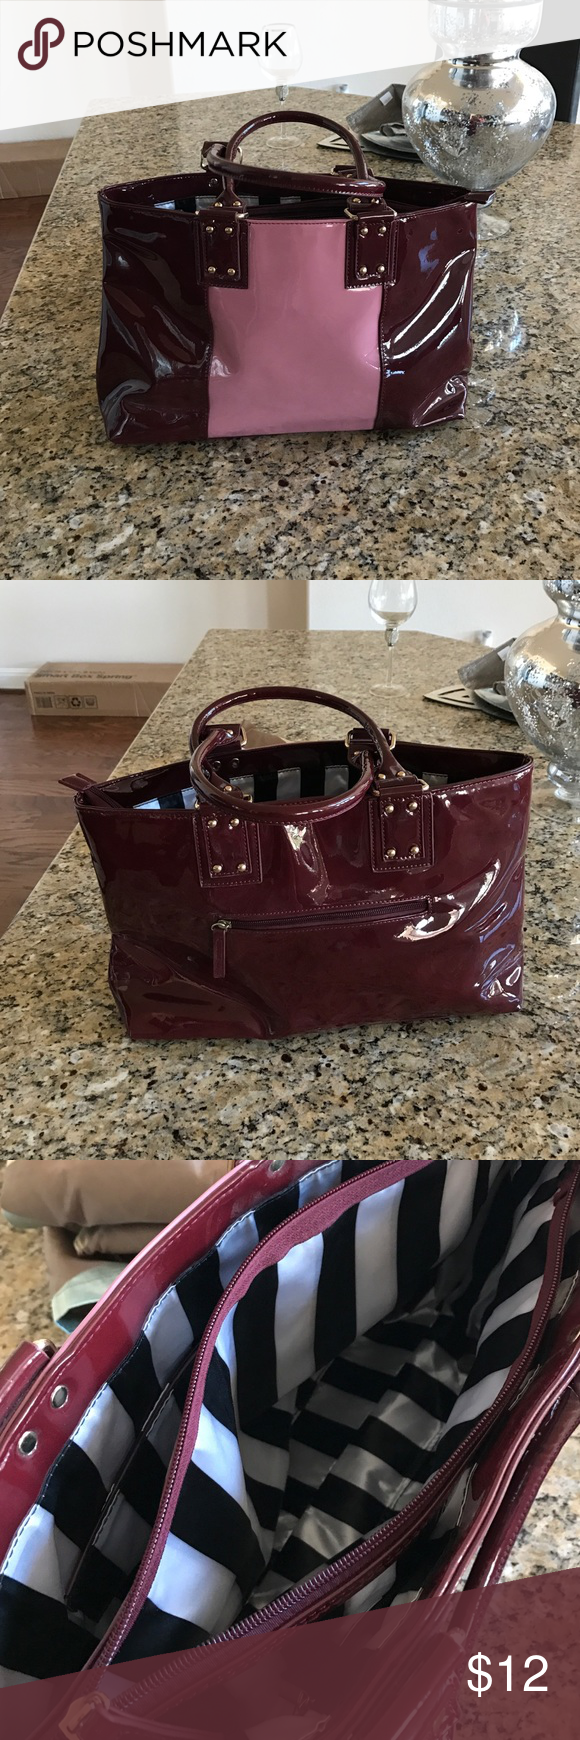 Wine and pink patent leather purse Like new condition. Carried once Charming Charlie Bags